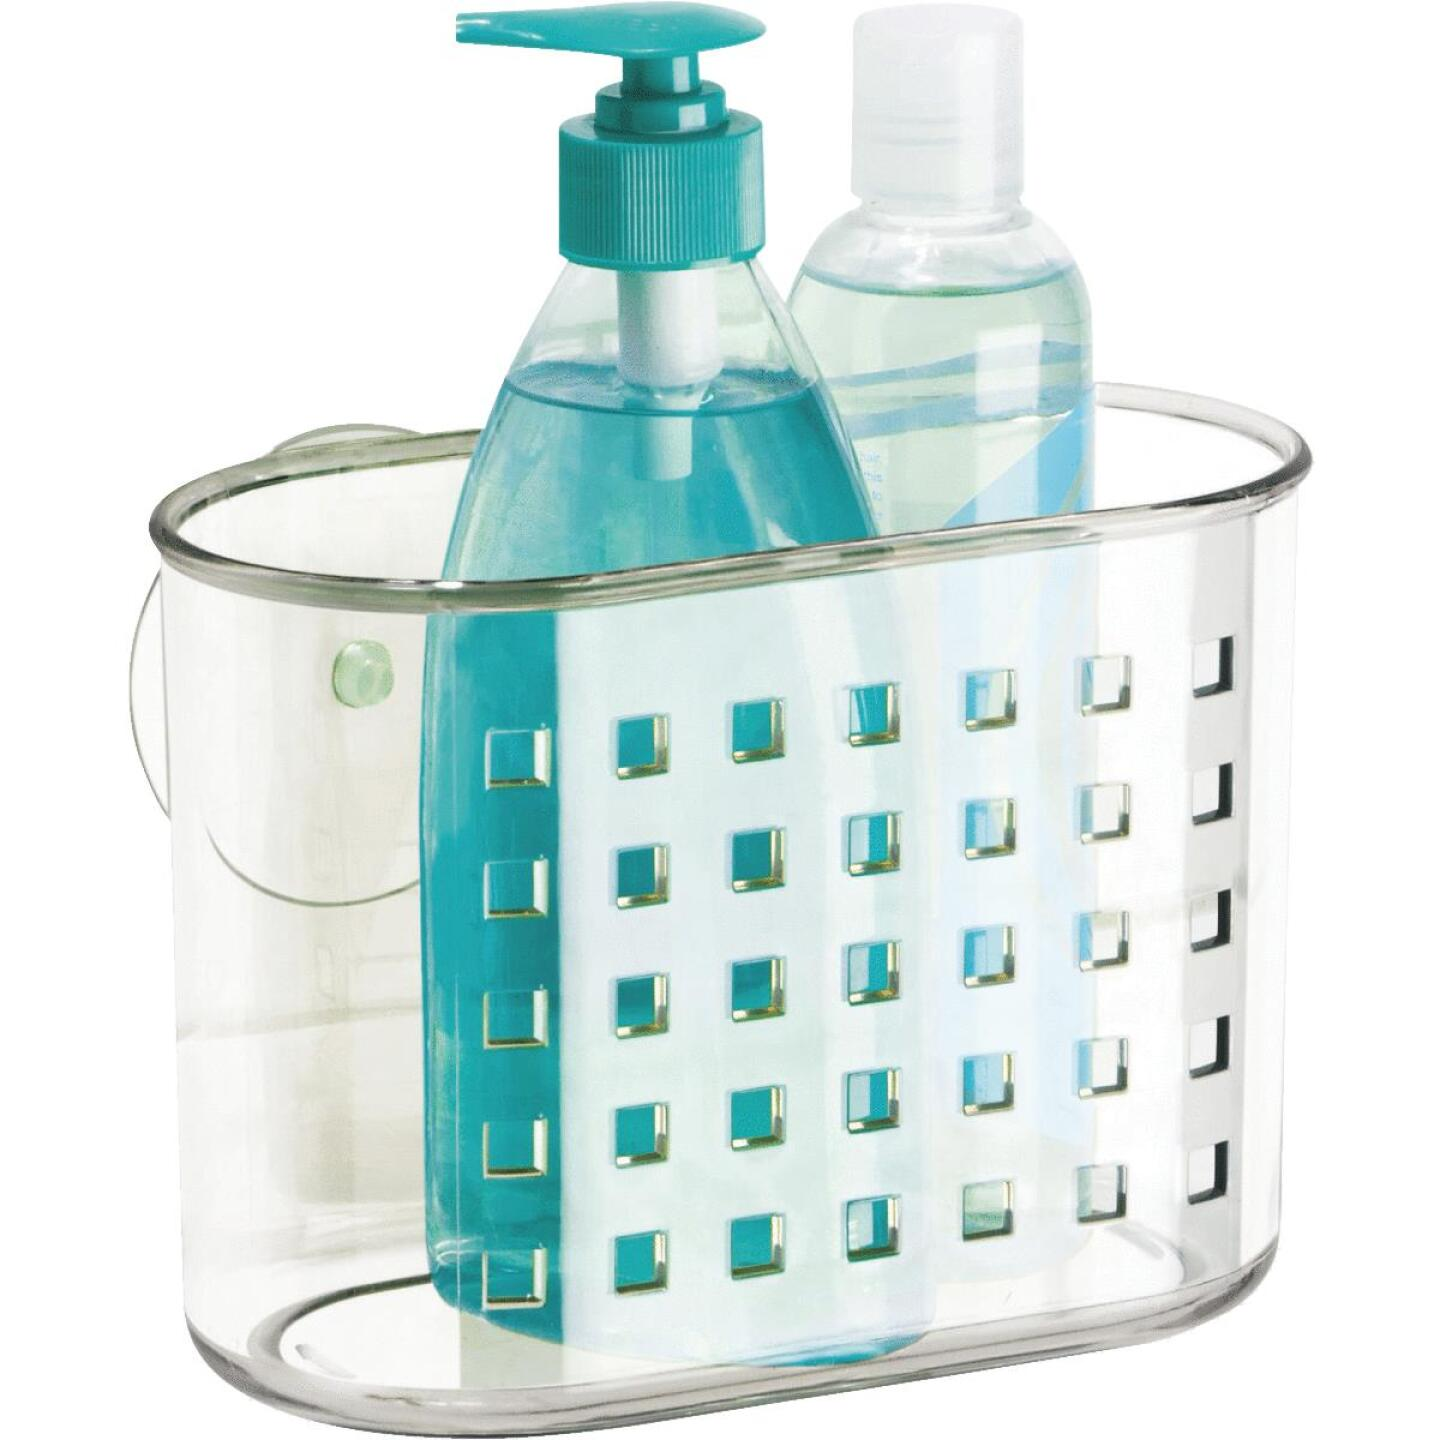 InterDesign 7.25 In. x 5 In. x 3.5 In. Suction Shower Basket Image 3